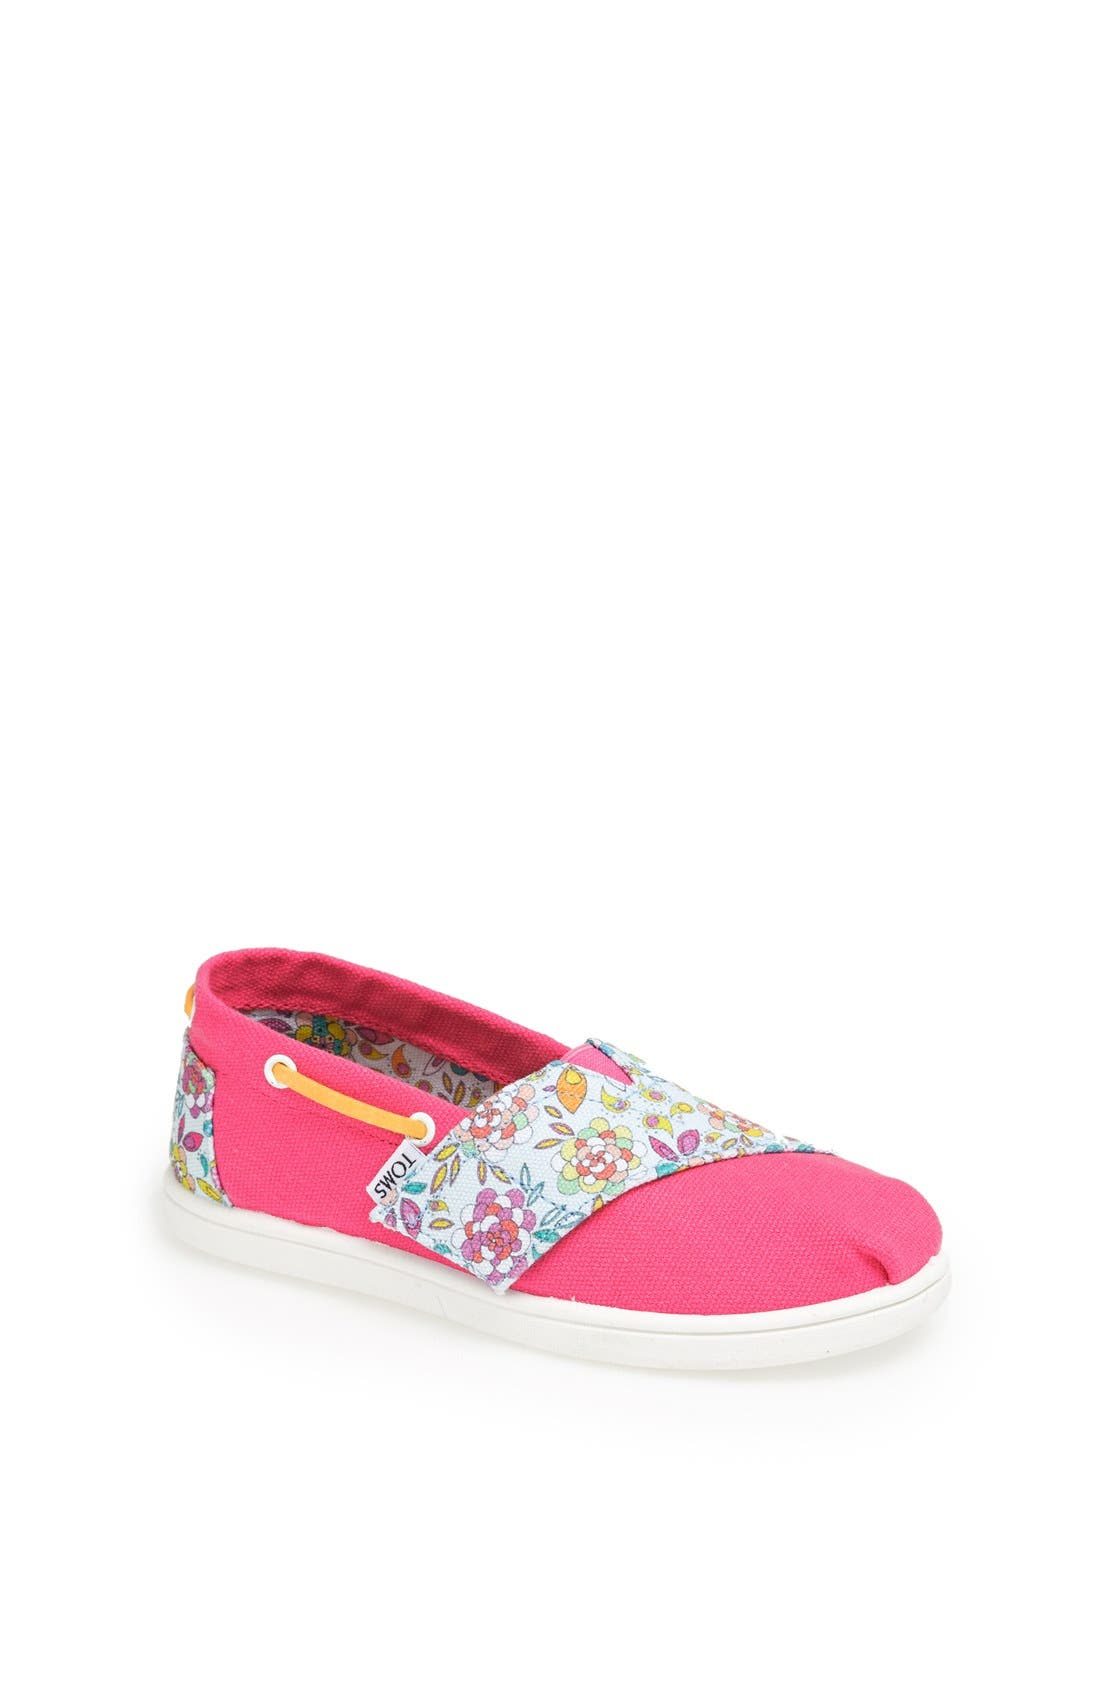 Main Image - TOMS 'Bimini Tiny - Pink Inked Floral' Slip-On (Baby, Walker & Toddler)